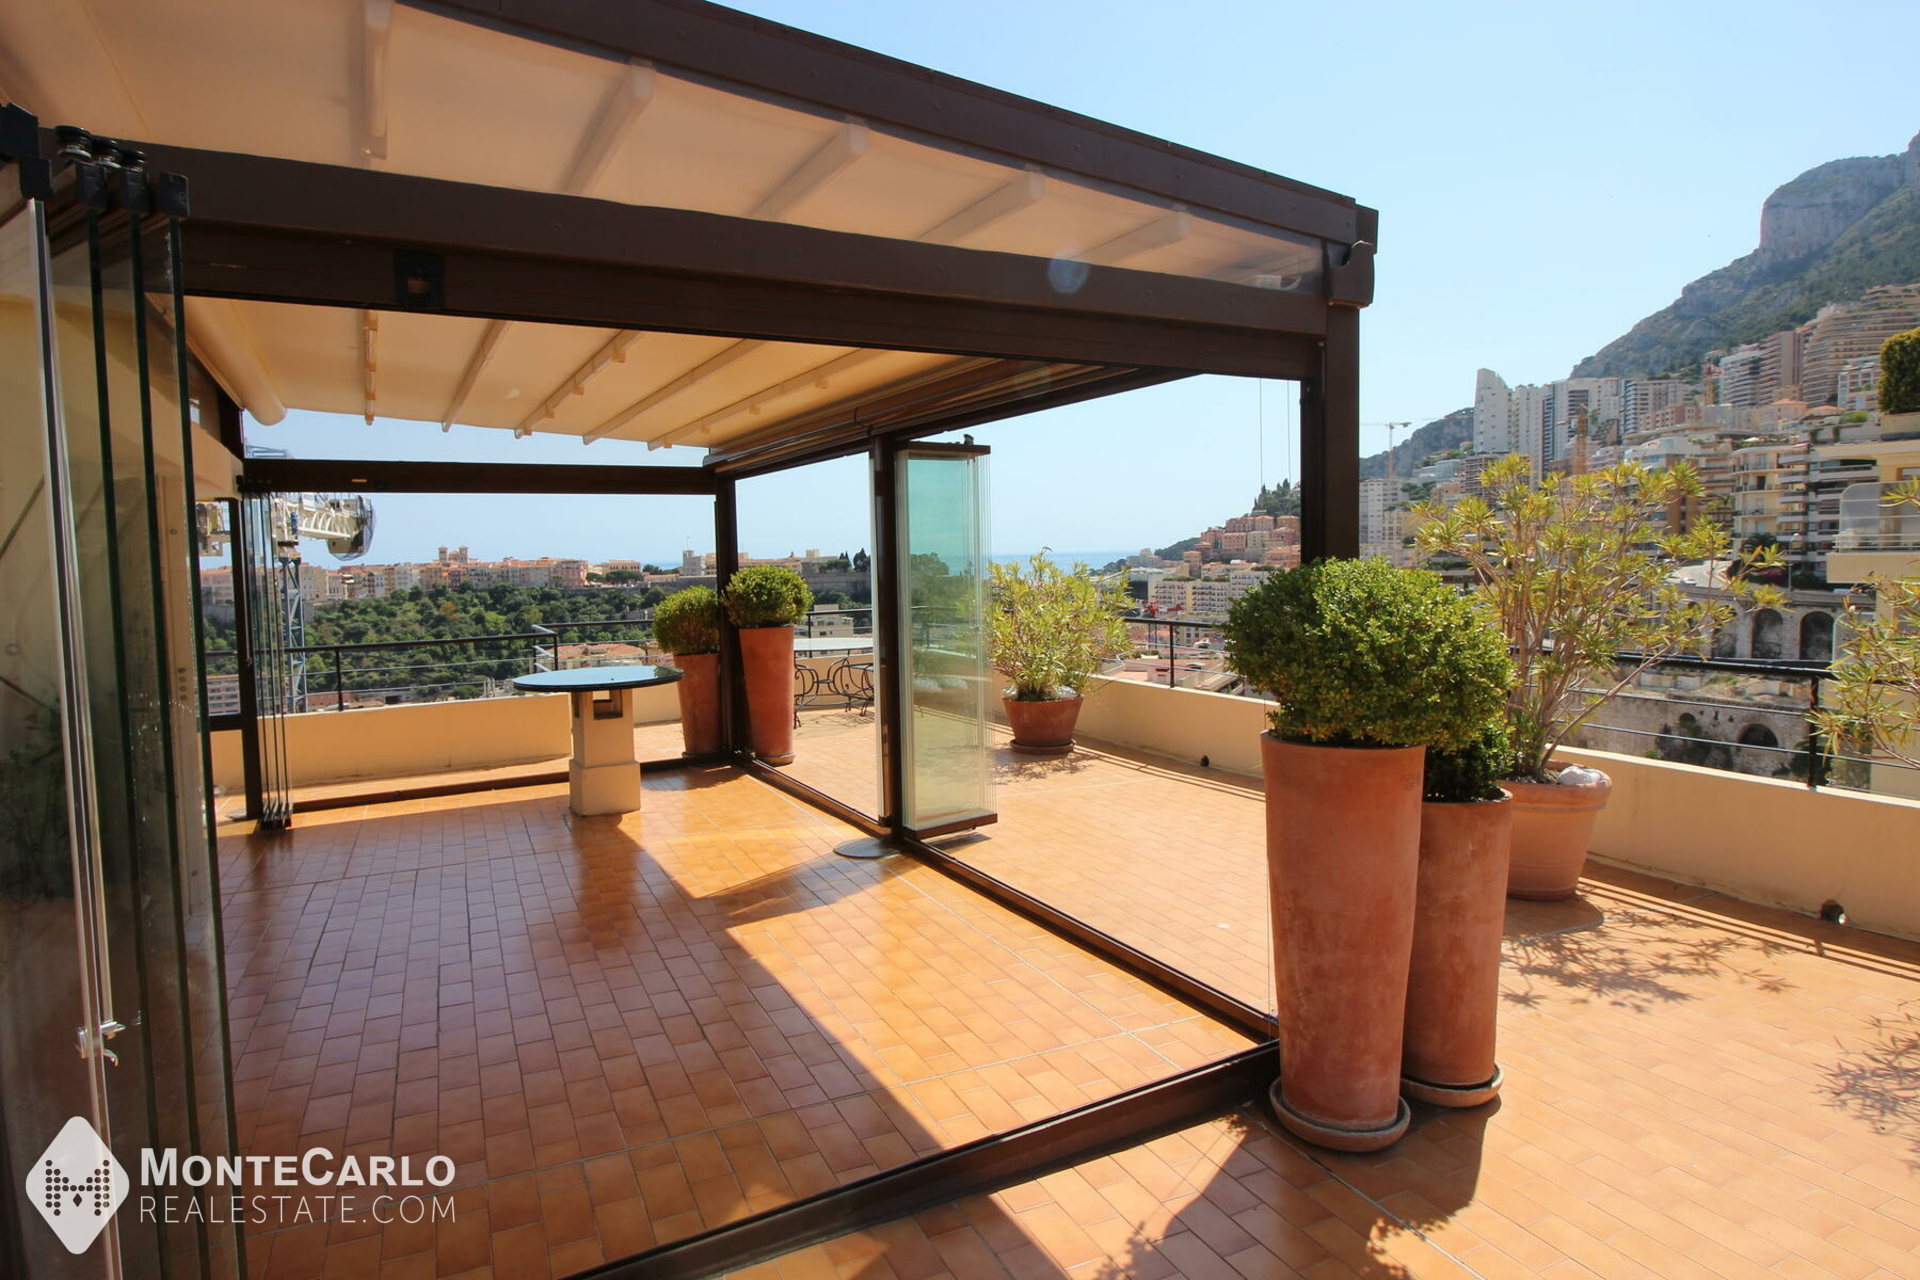 Vermietung Rose de France - Penthouse/Roof / 4 Zimmer : 16 550 € | Monte-Carlo Real Estate [LM020-18]